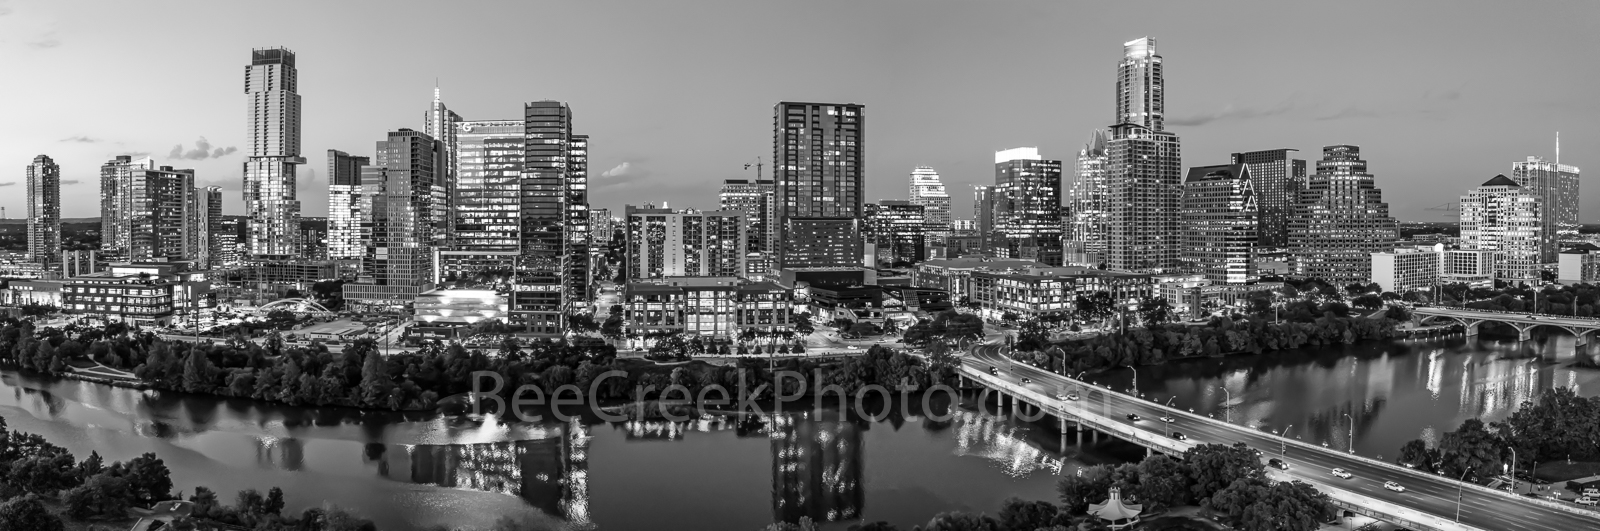 above, Aerial, Austin Skyline twilight, Austin, skyline, aerial,twilight, BW, black and white, lady bird lake, hike and bike trail, cityscape, water, pano, panorama, tallest building, Independent, Jin, photo